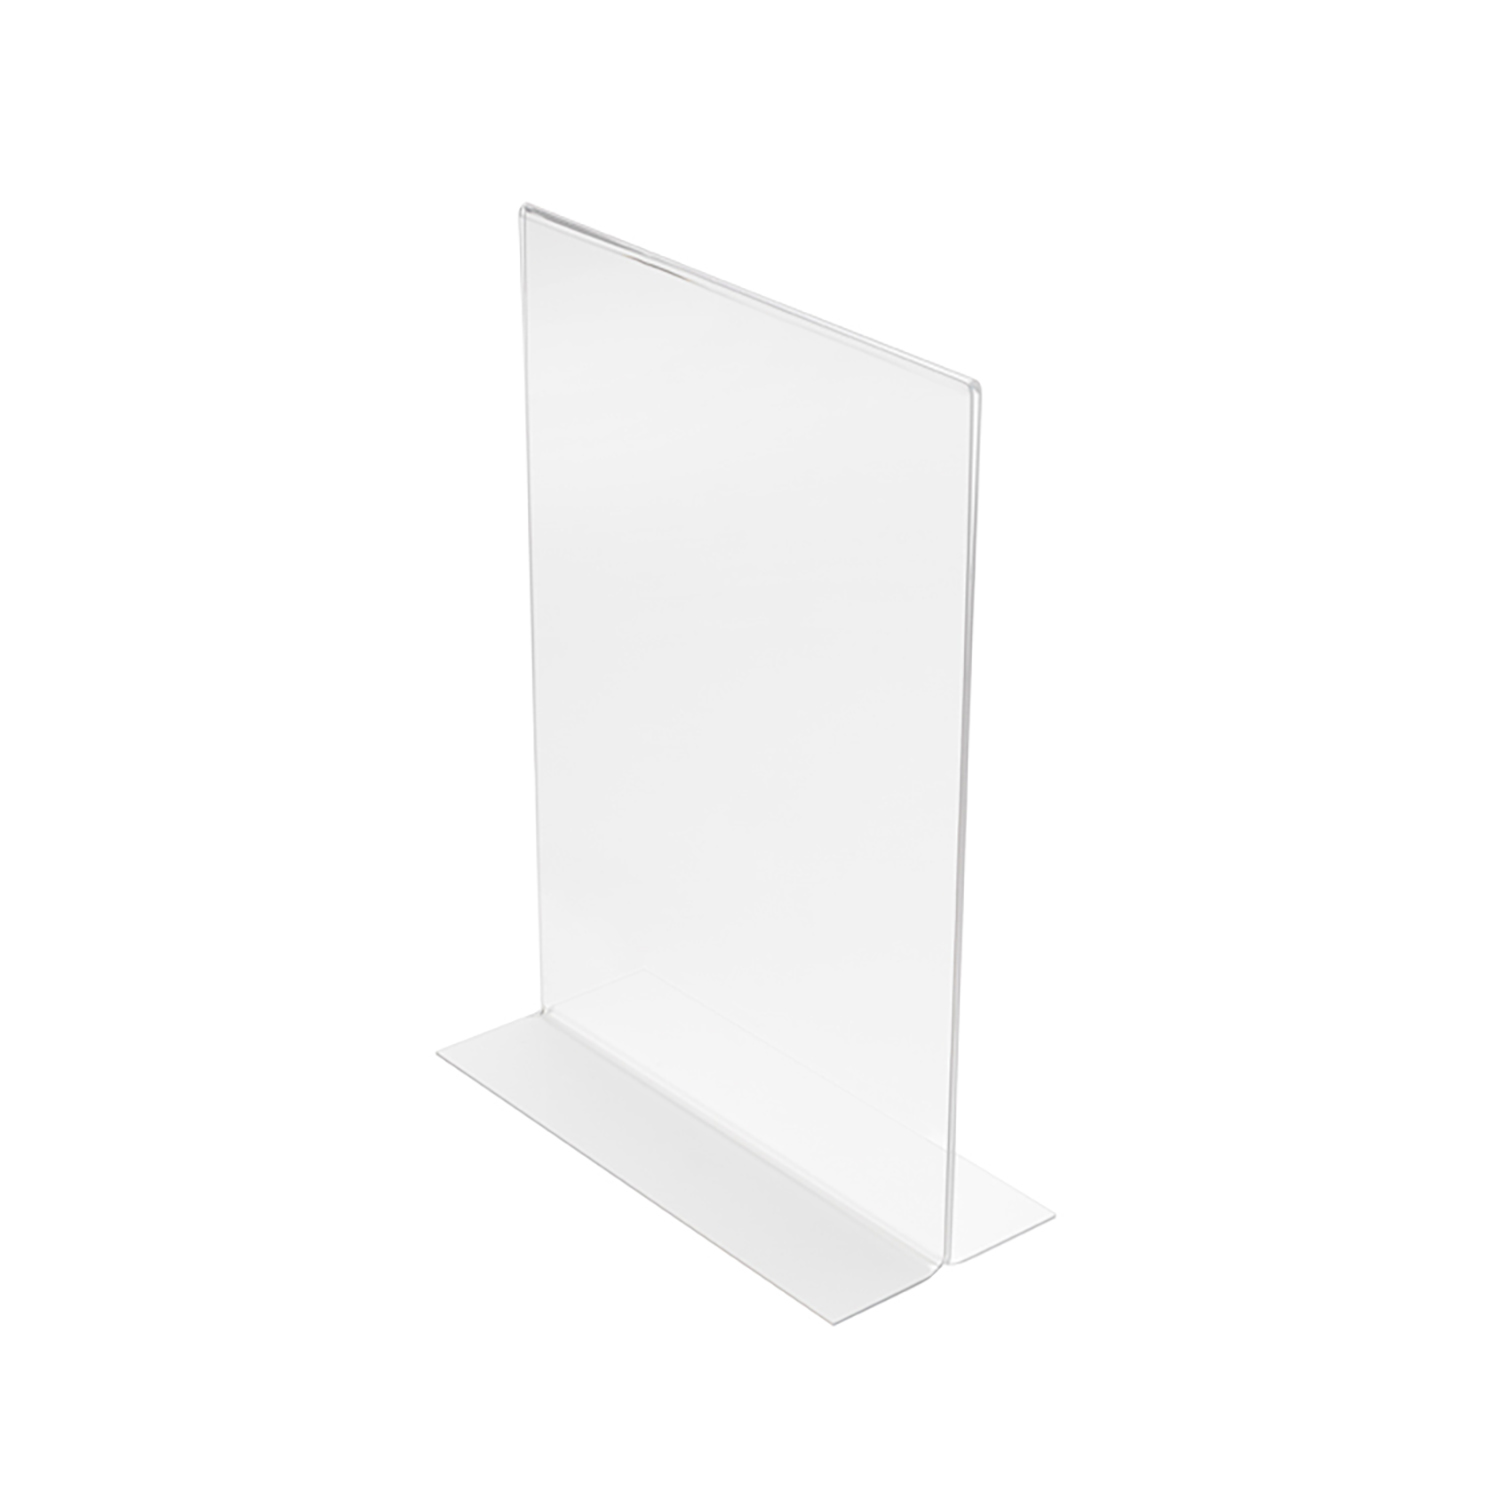 Literature Holders Stand Up Sign Holder Double Sided Portrait A5 Clear